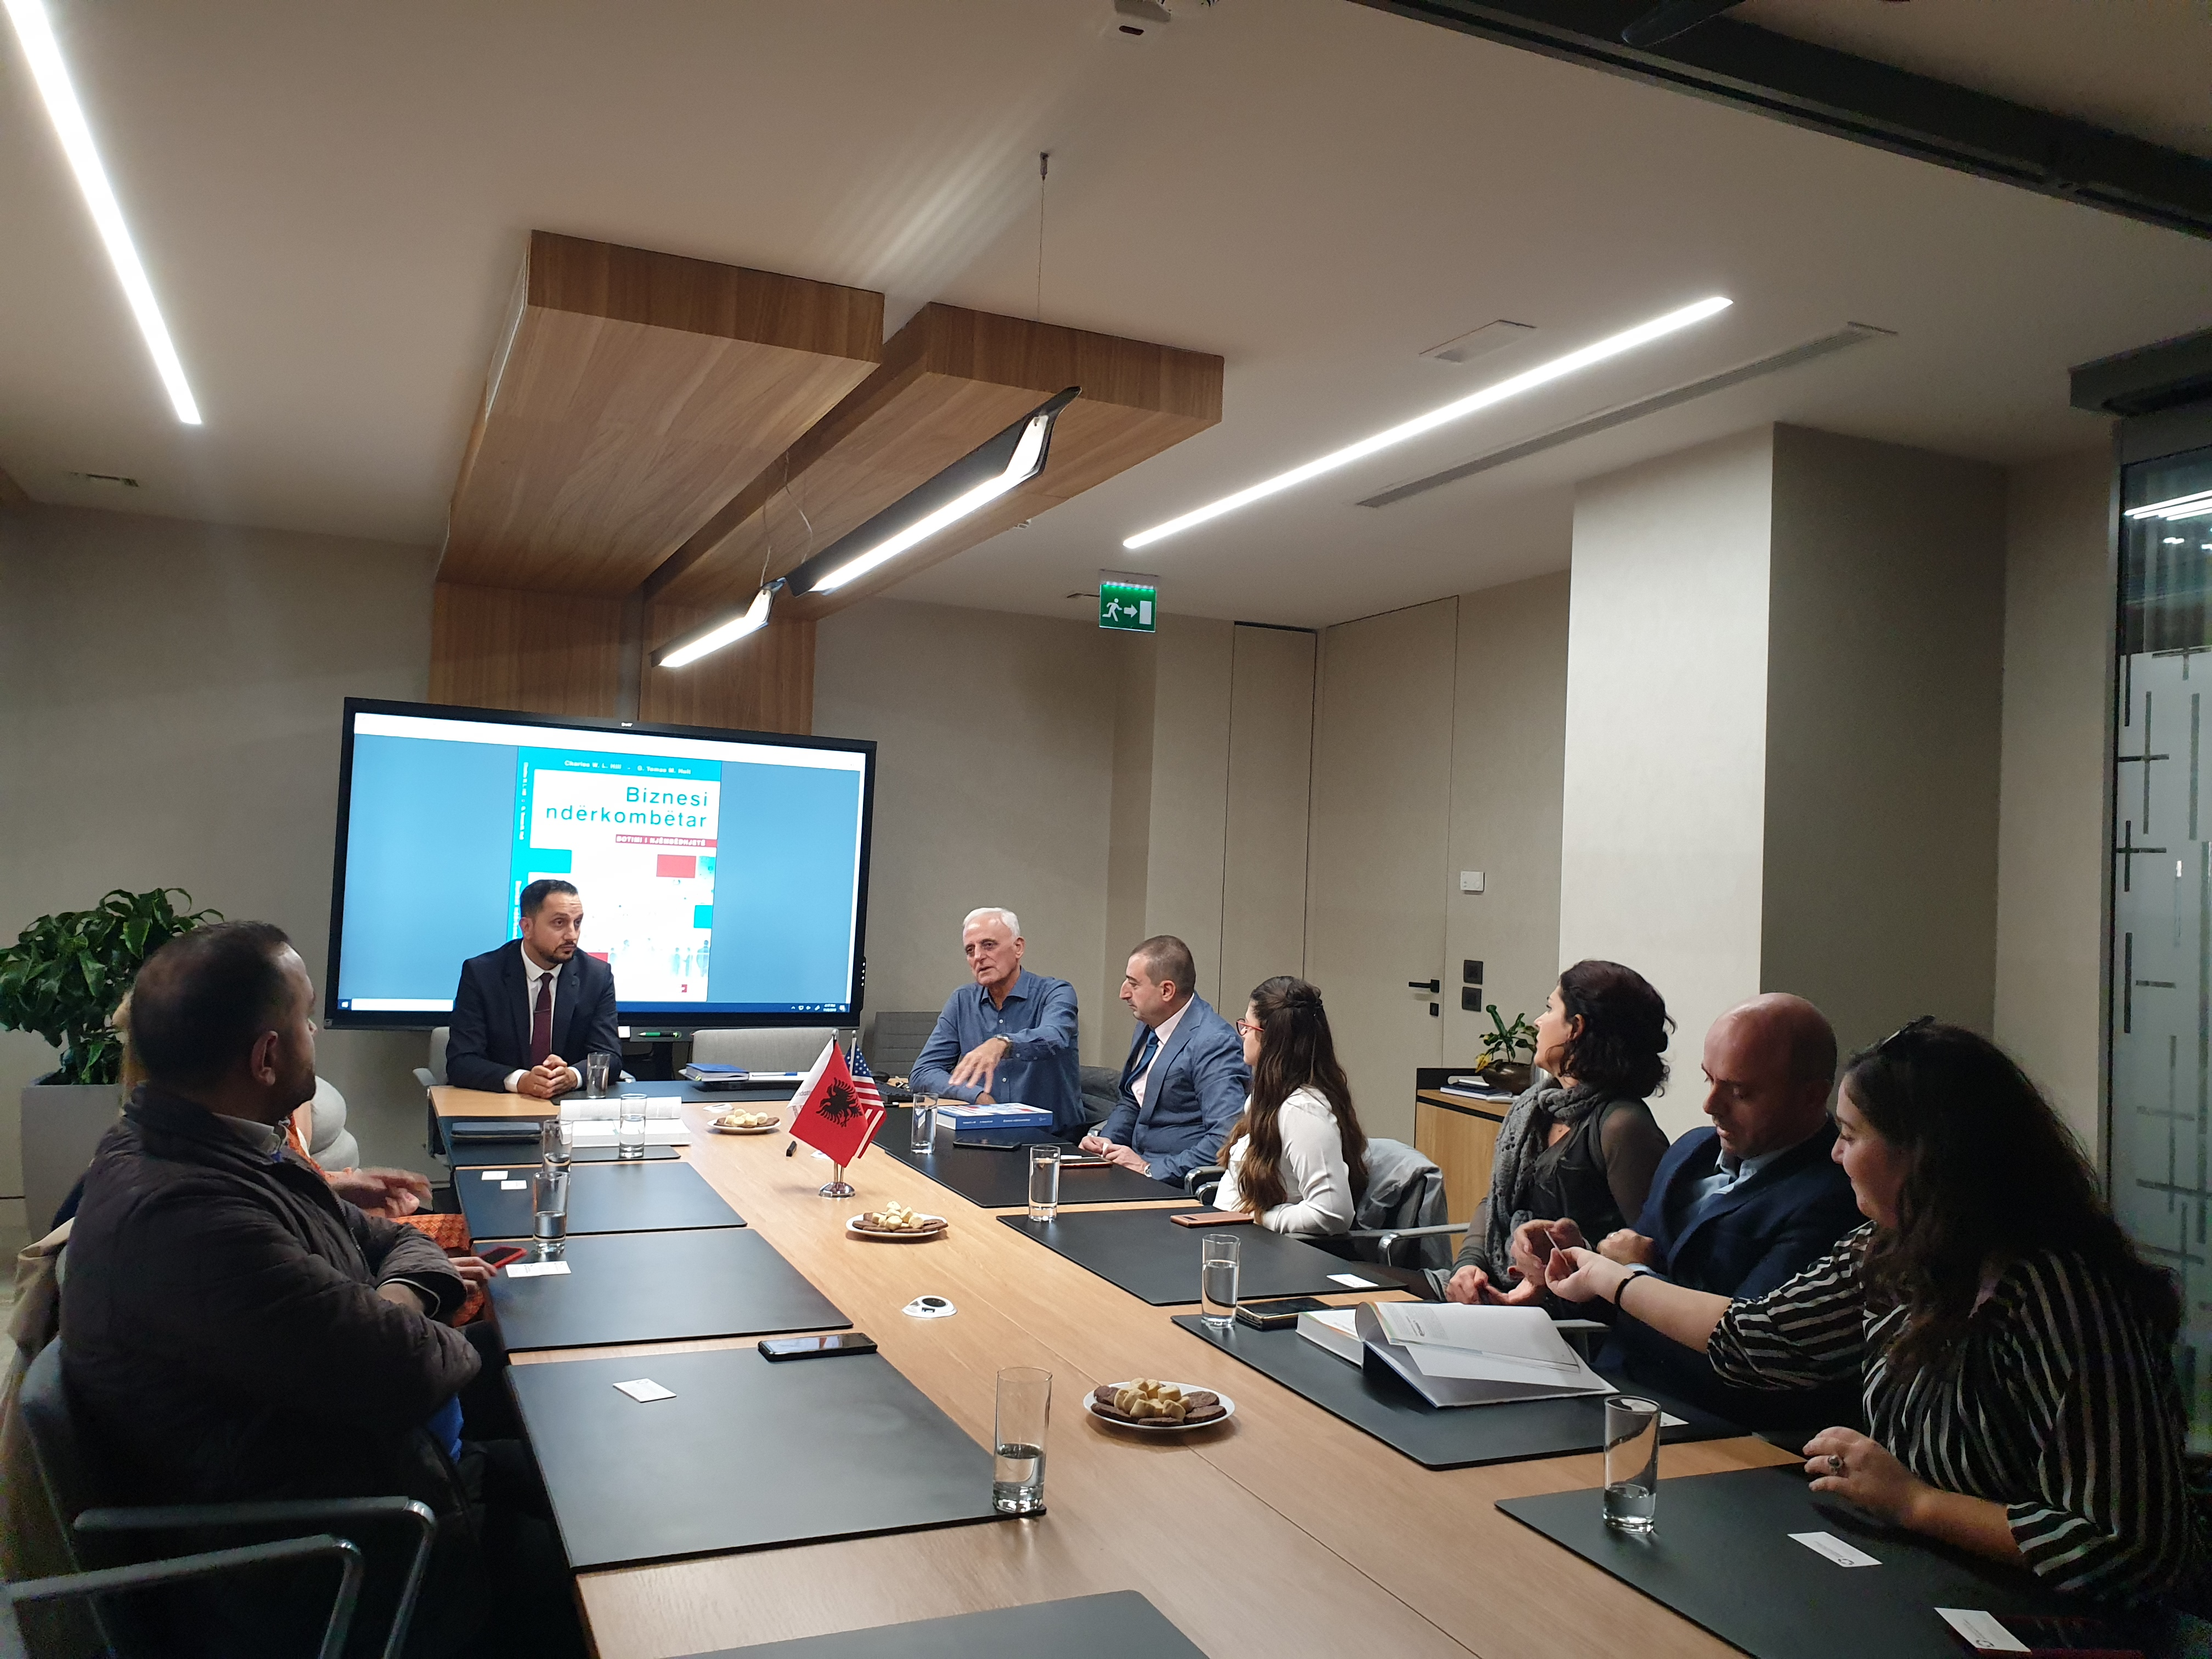 Roundtable Discussion with professors on International Business textbook